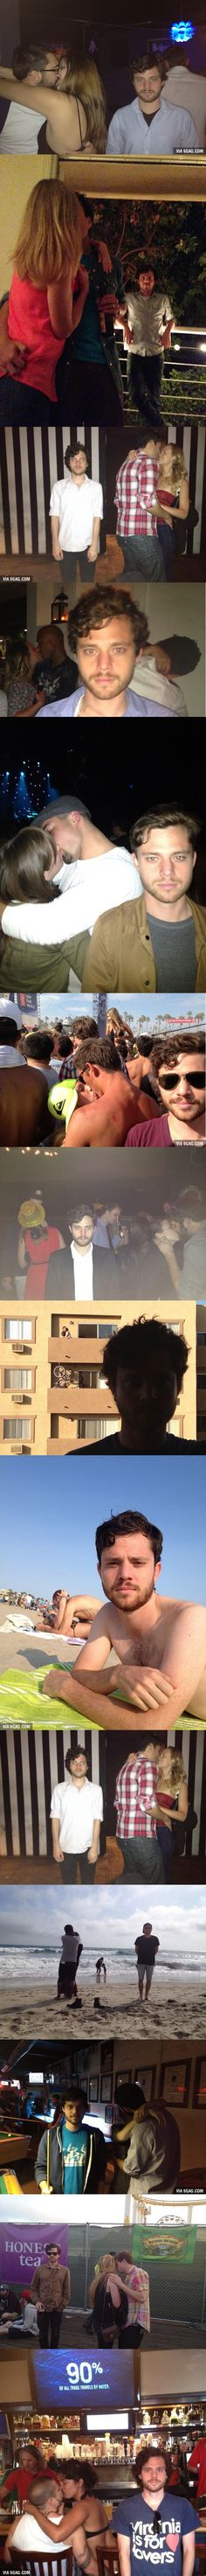 This Guy Takes Selfies With Couples Making Out In Public And It's Triumphant